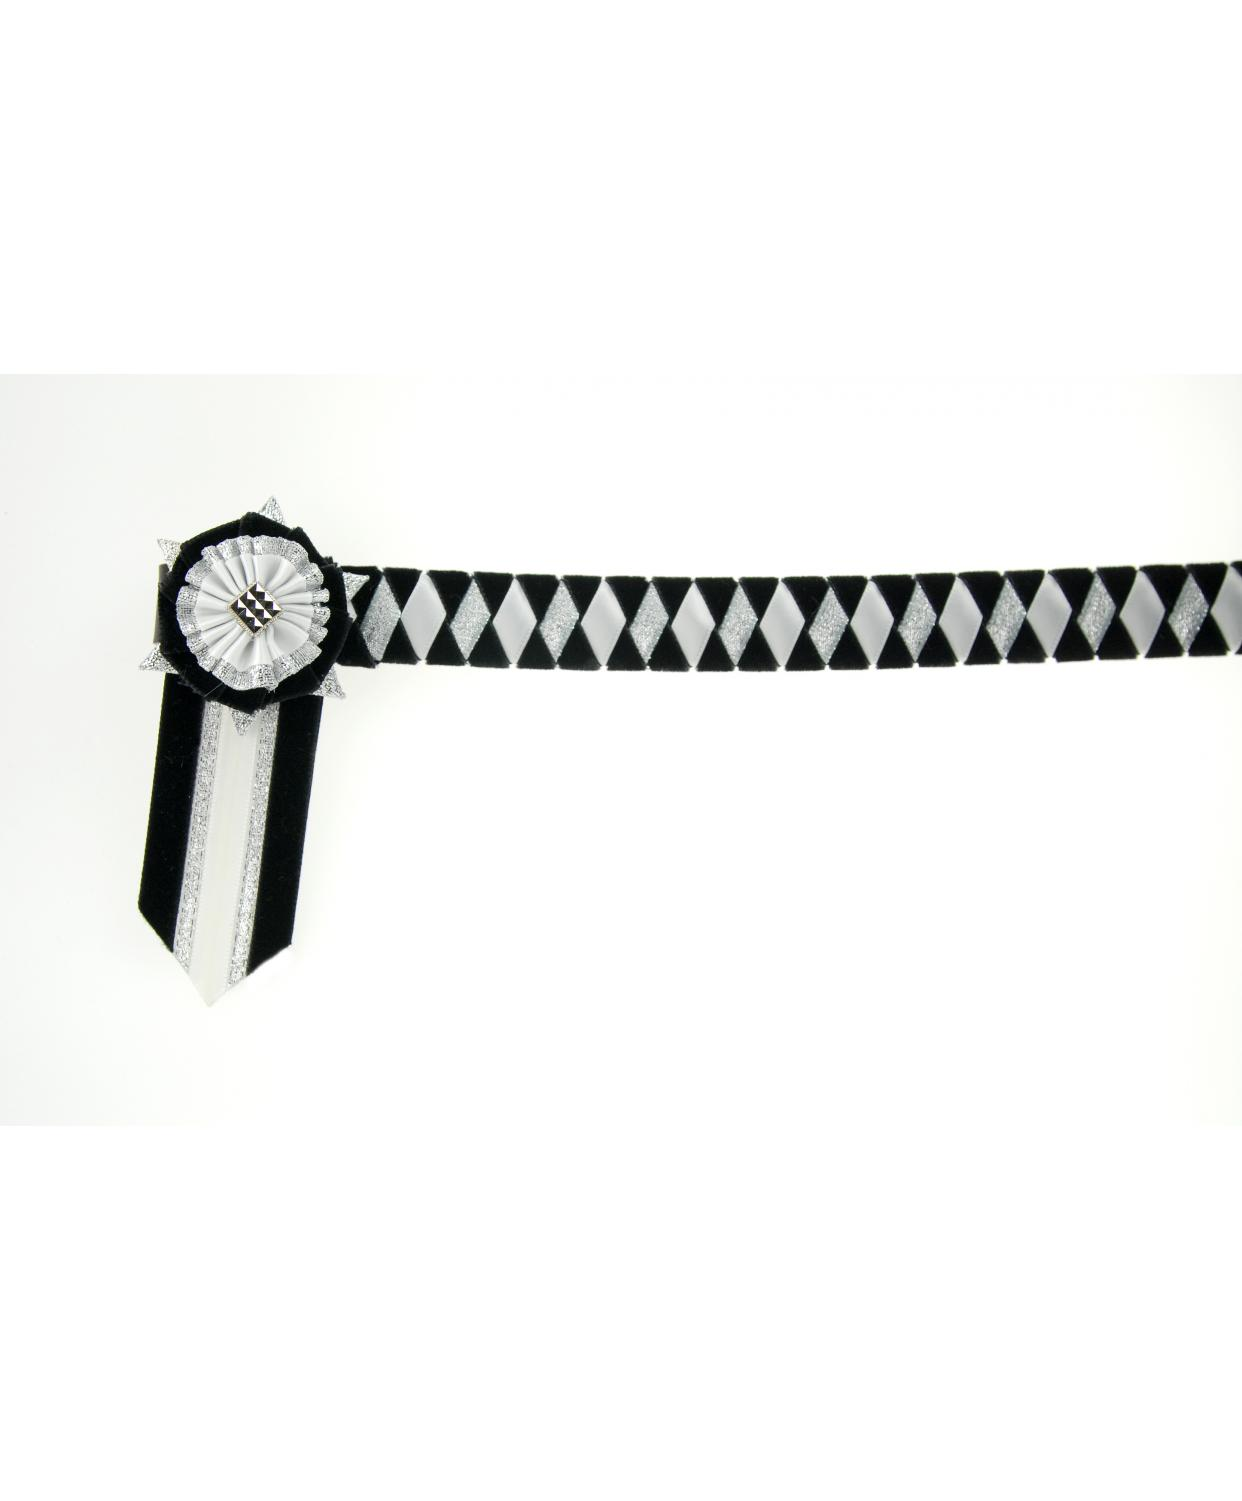 Boston Browband